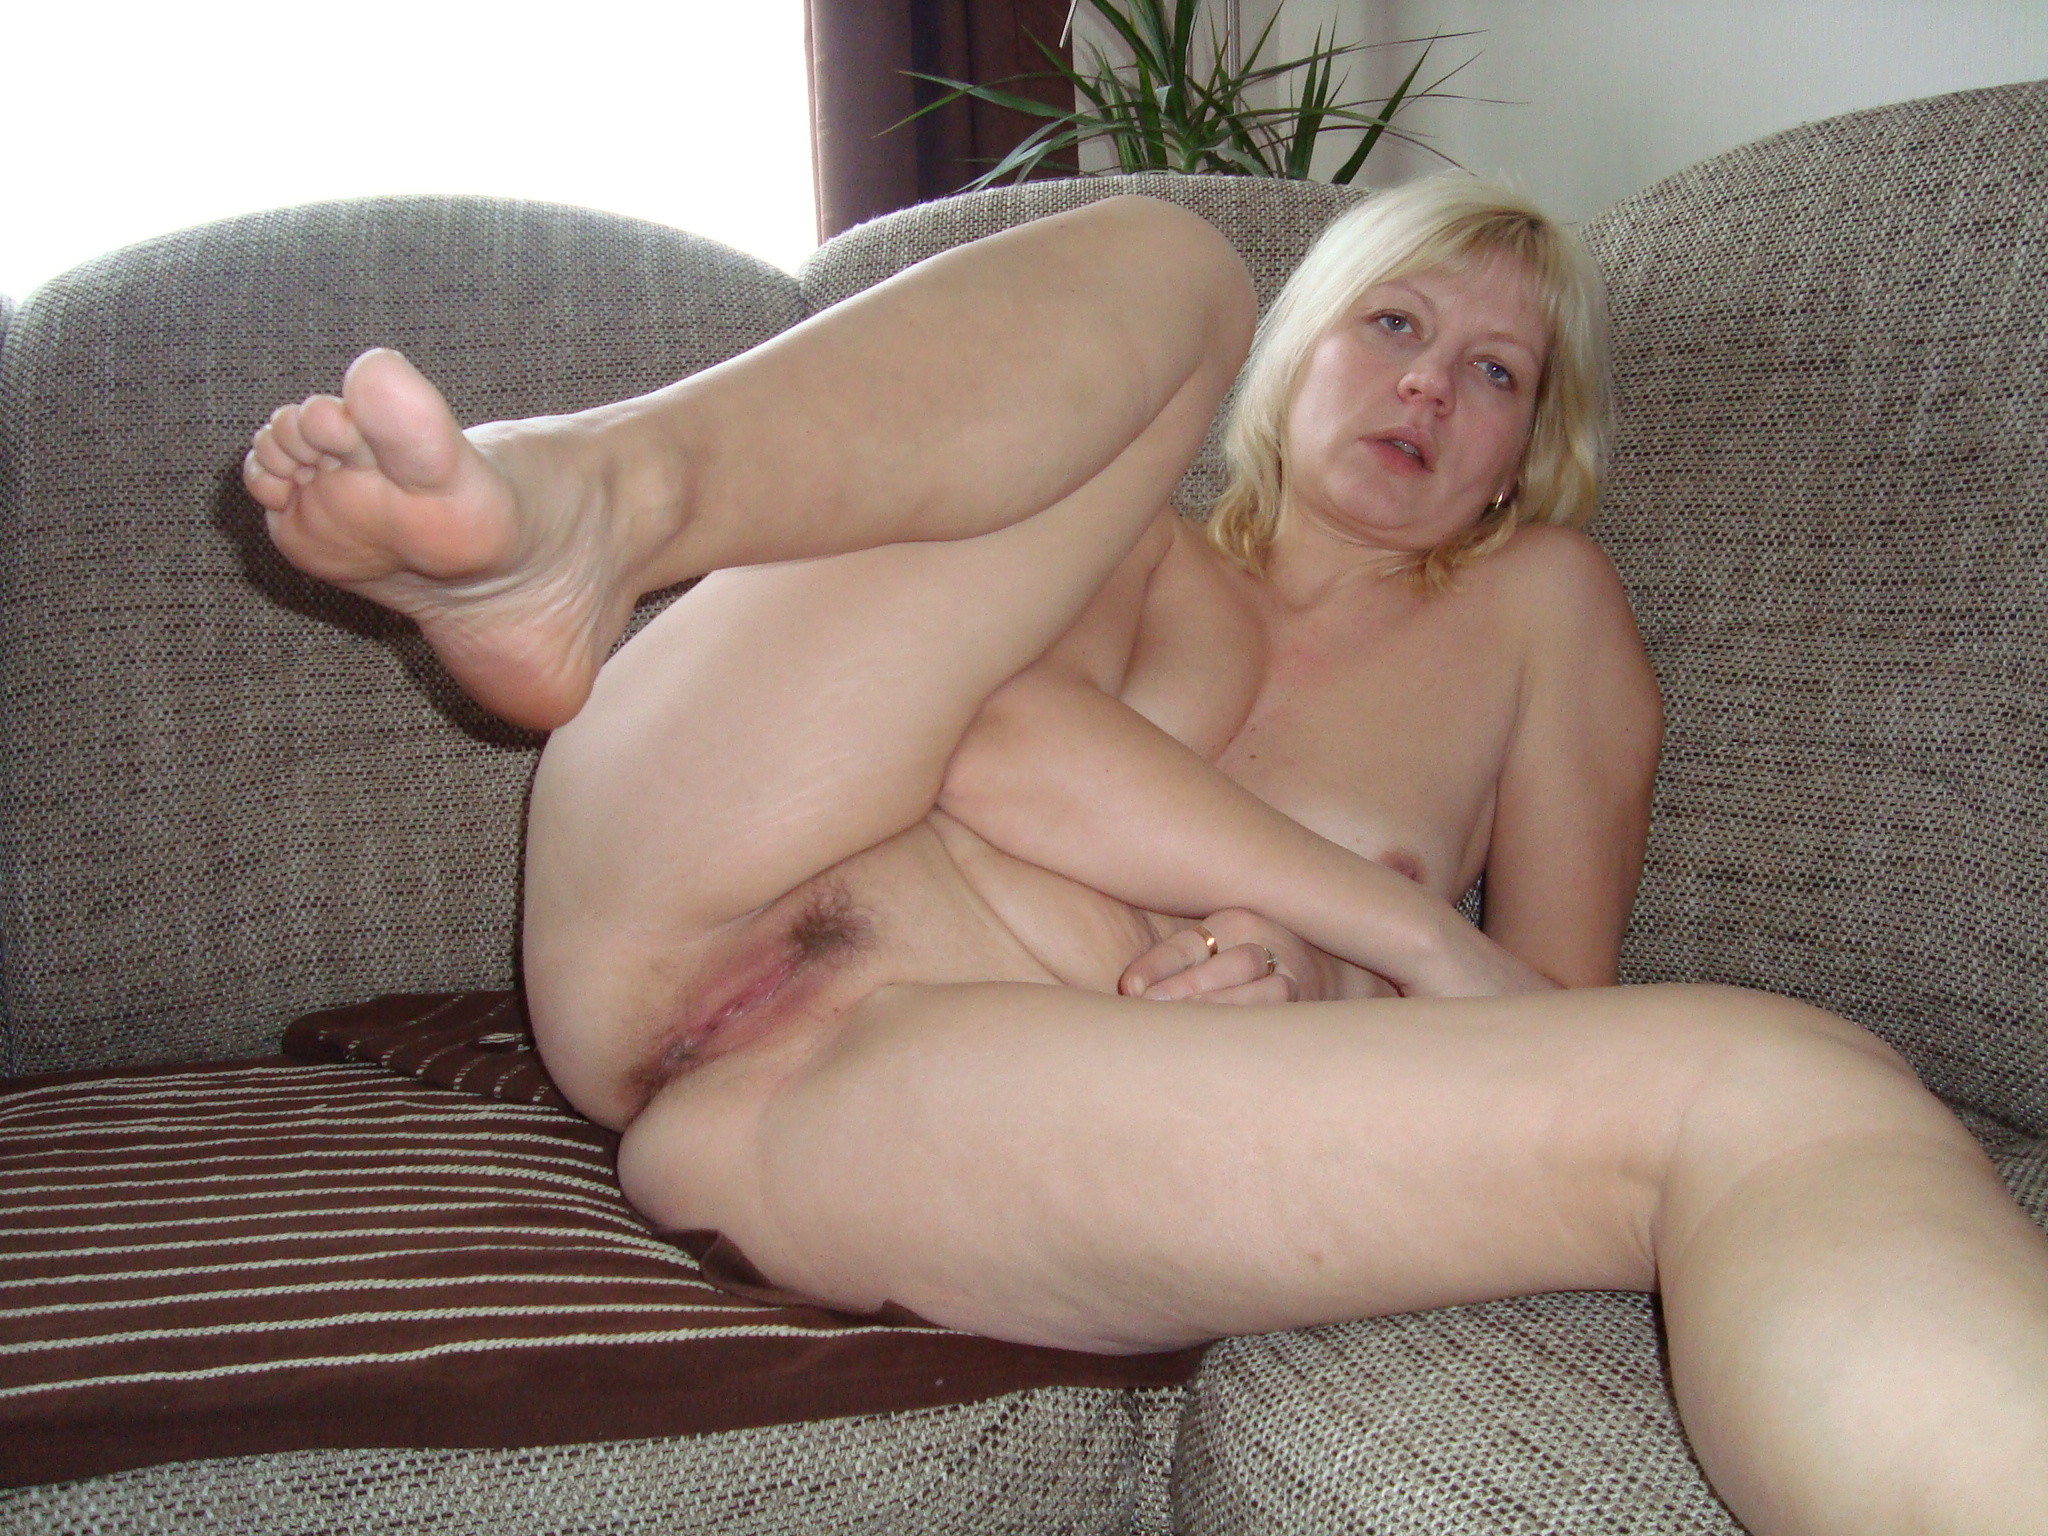 mature plump wet - hot nude photos